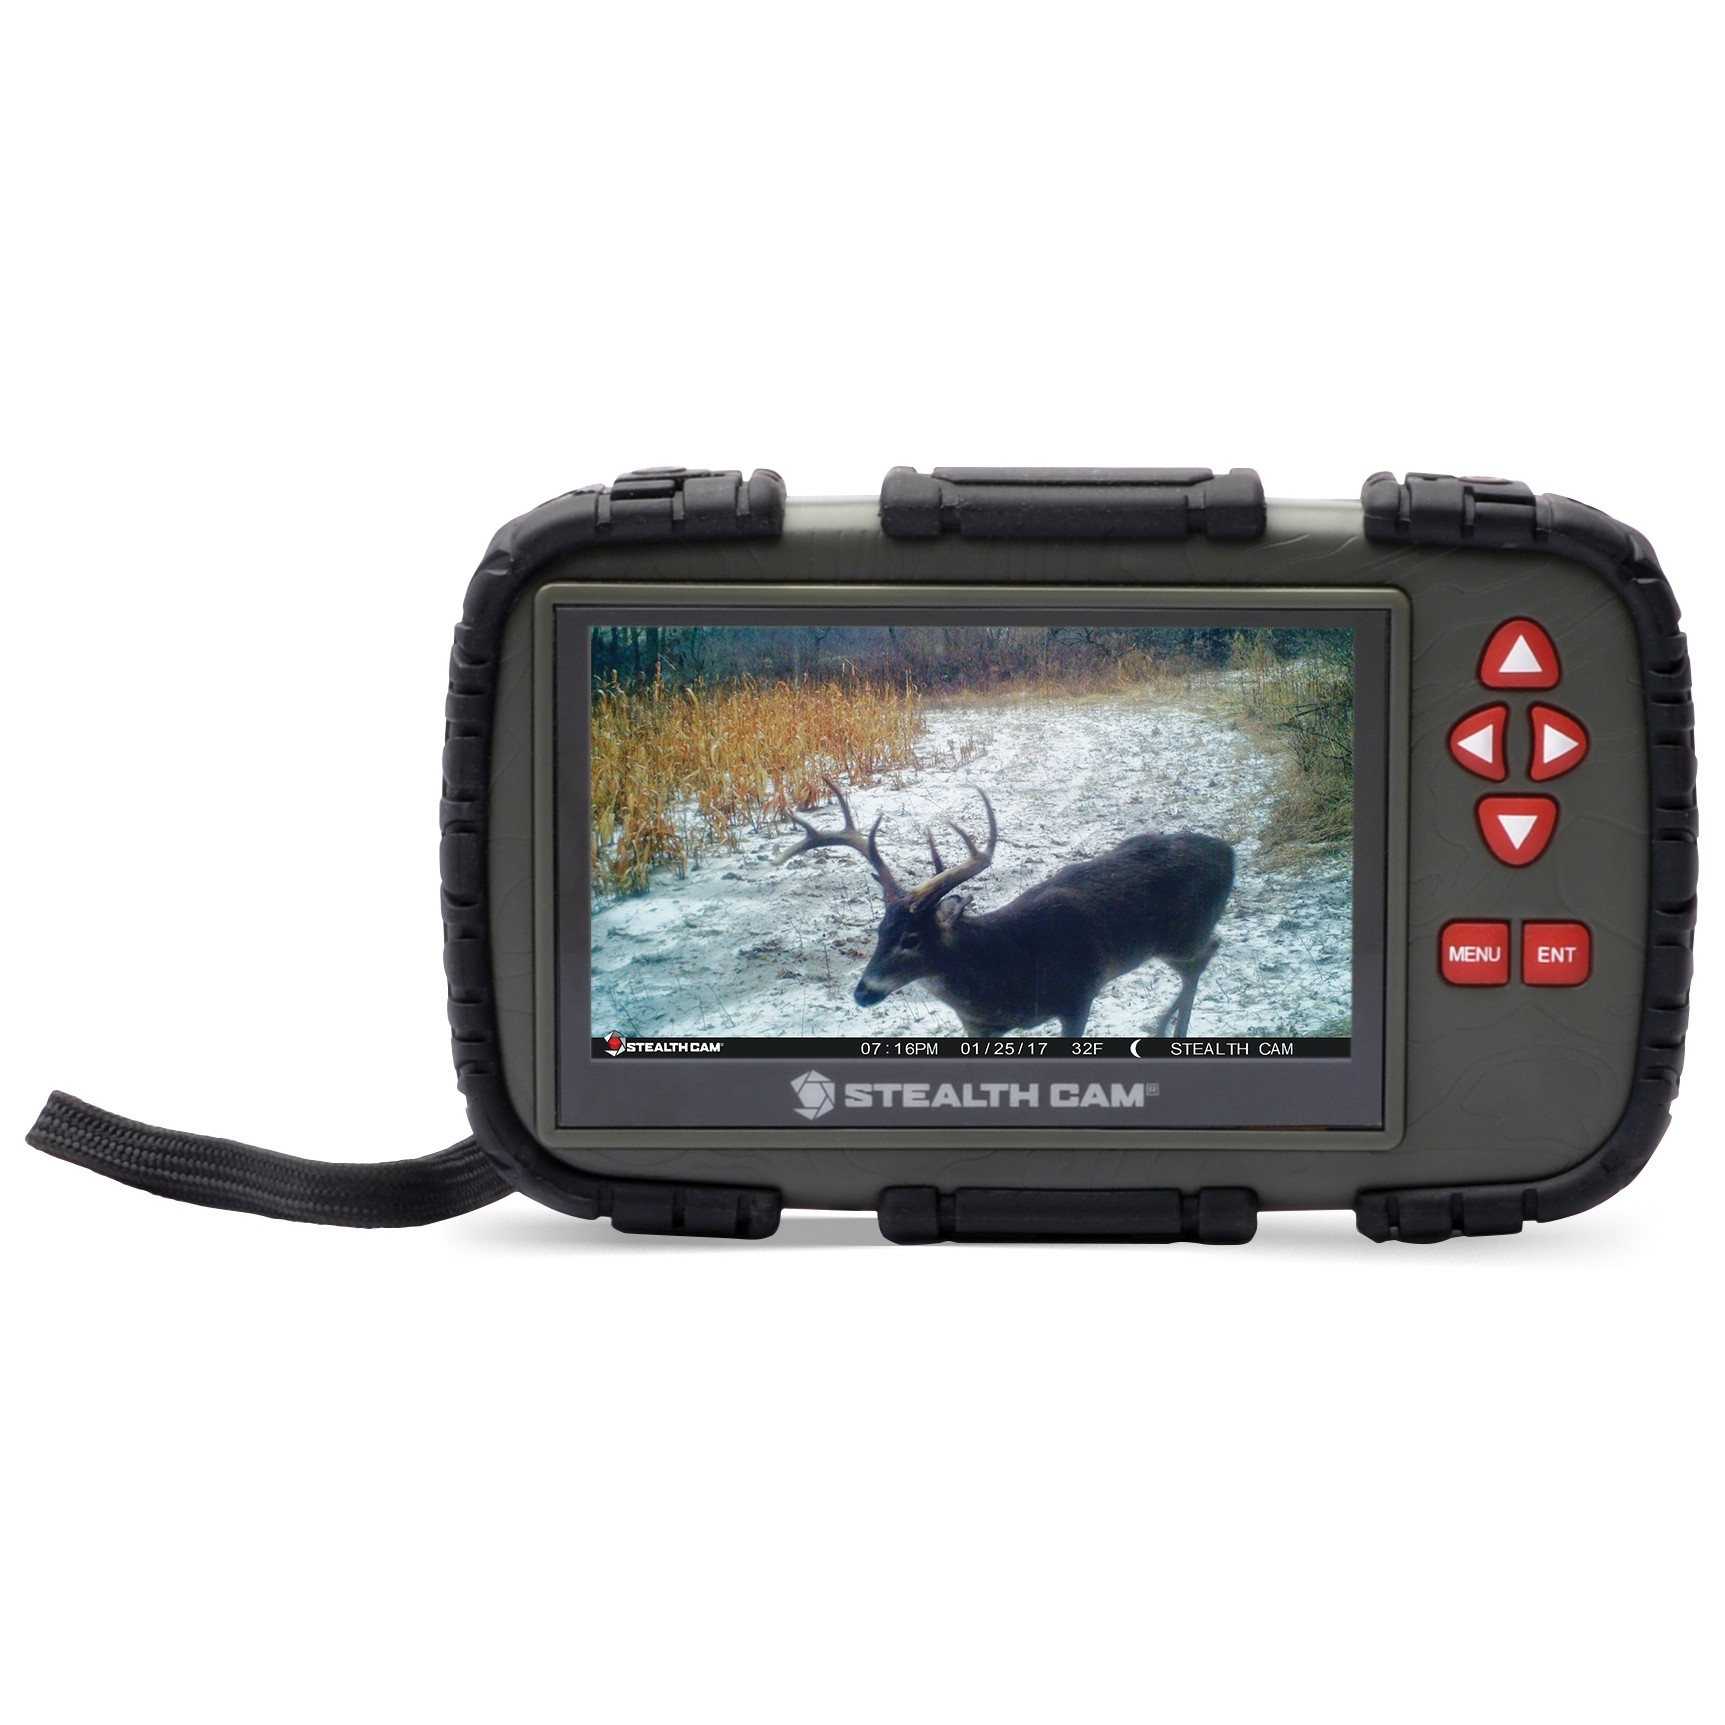 "Stealth Cam 4.3"" Touch Screen Viewer"